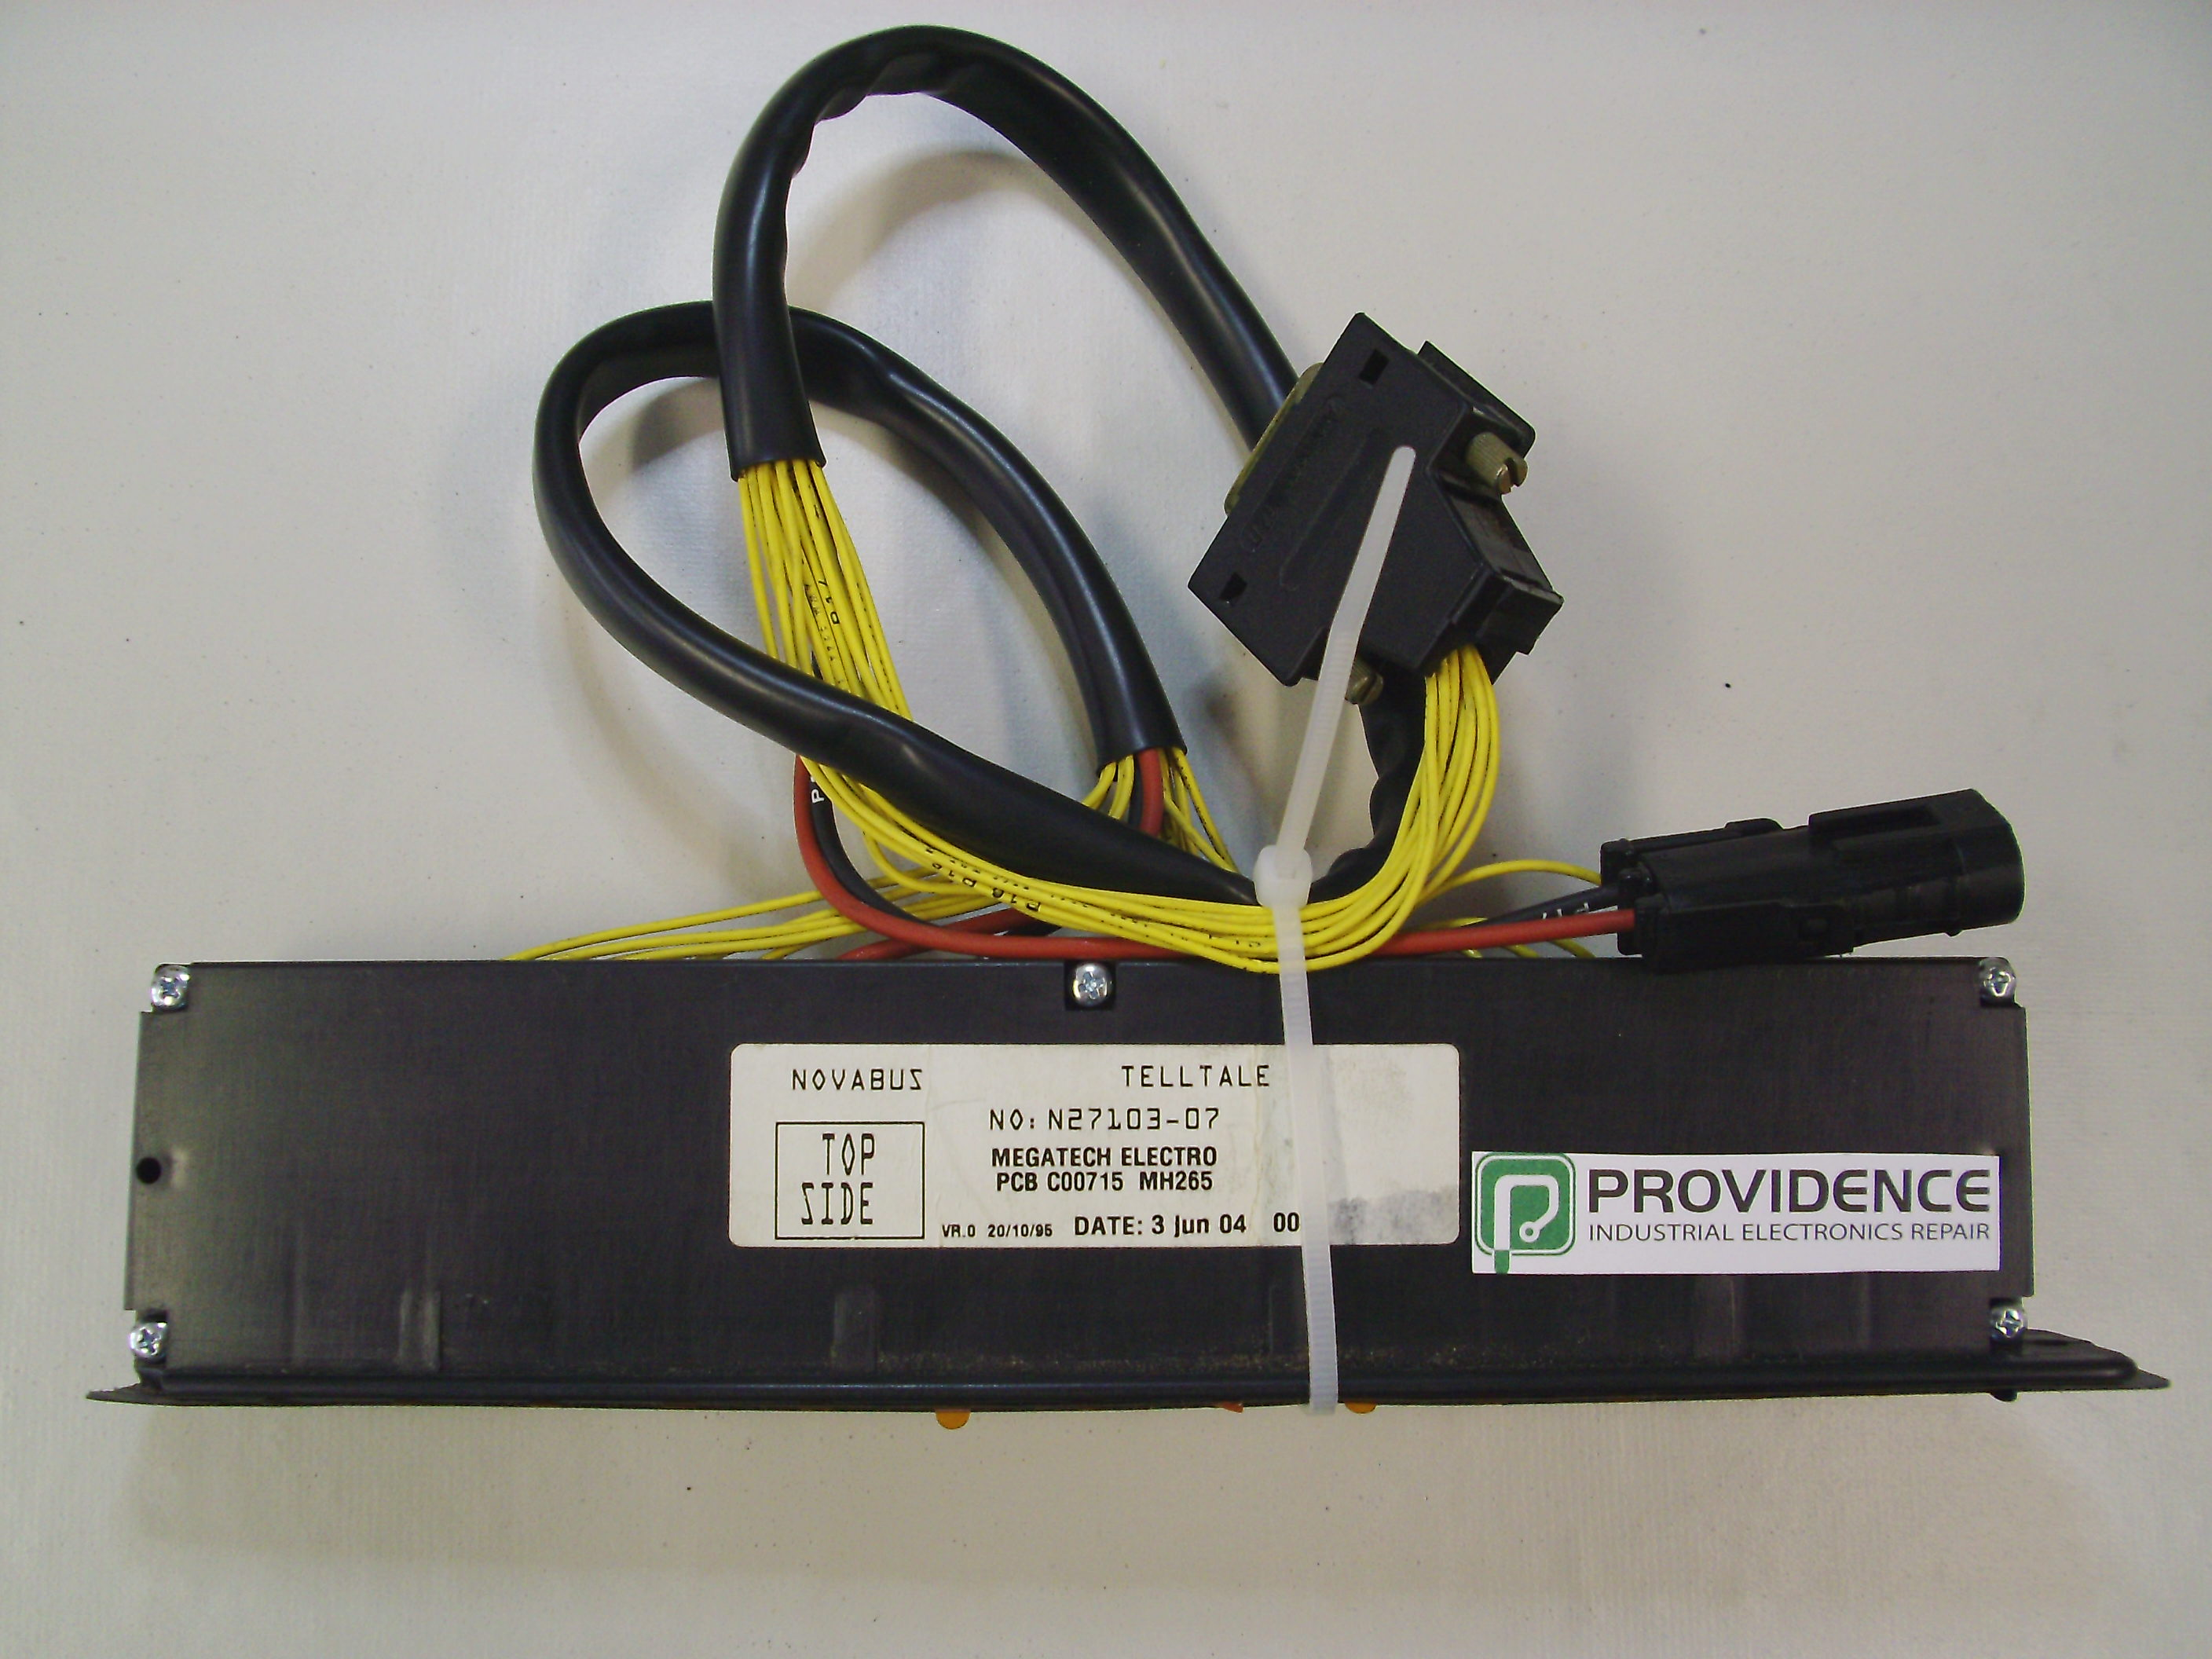 Providence Industrial Electronics Repair Inc Information On This Electronic Wiring Unit